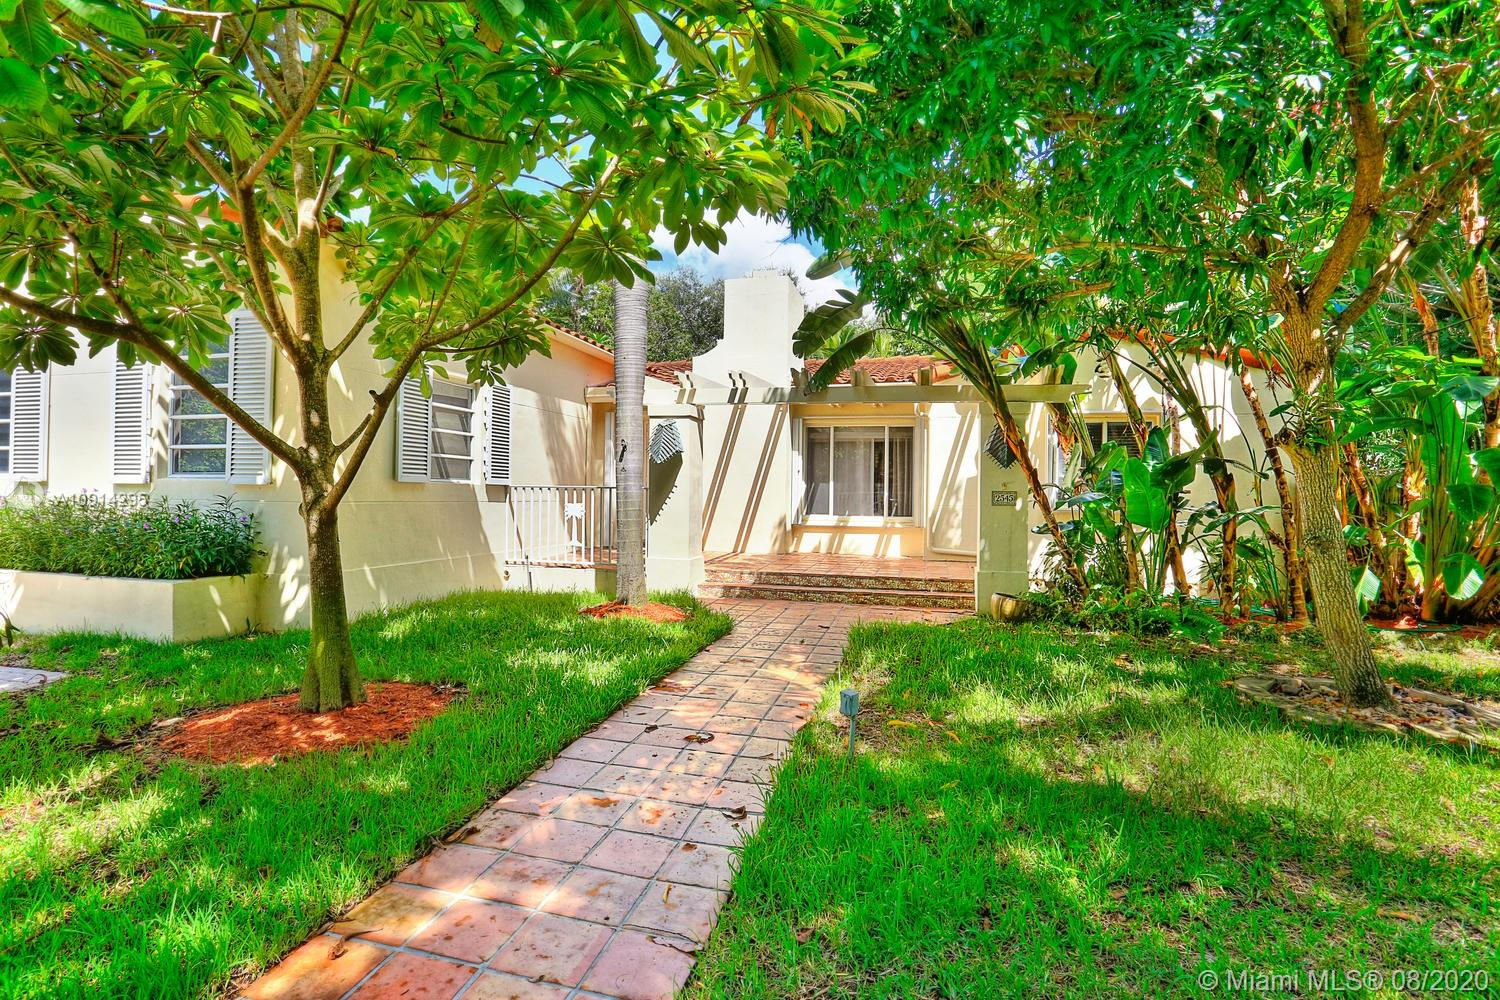 Lovely gated home on a quiet tree-lined street surrounded by a 10,339 SF garden with palms & shade trees.  Located just a short walk or bike ride to bayfront  parks  & marinas and close to the Grove village center's galleries, boutiques & cafes. Light-filled living spaces with beautiful hardwood floors, fireplace & vaulted ceilings. Updated custom kitchen features wood cabinetry, granite countertops & stainless appliances. 2BR/2BA main house + separate 1BR/1BA guest house w/ kitchenette. Ultra-private, tropical backyard with freeform pool, waterfall & expansive wood deck. Ample gated & street parking + room to park a boat. High sea-level elevation ( flood insurance not required ).Minutes to downtown, MIA, Coral Gables, Key Biscayne & the Beaches.